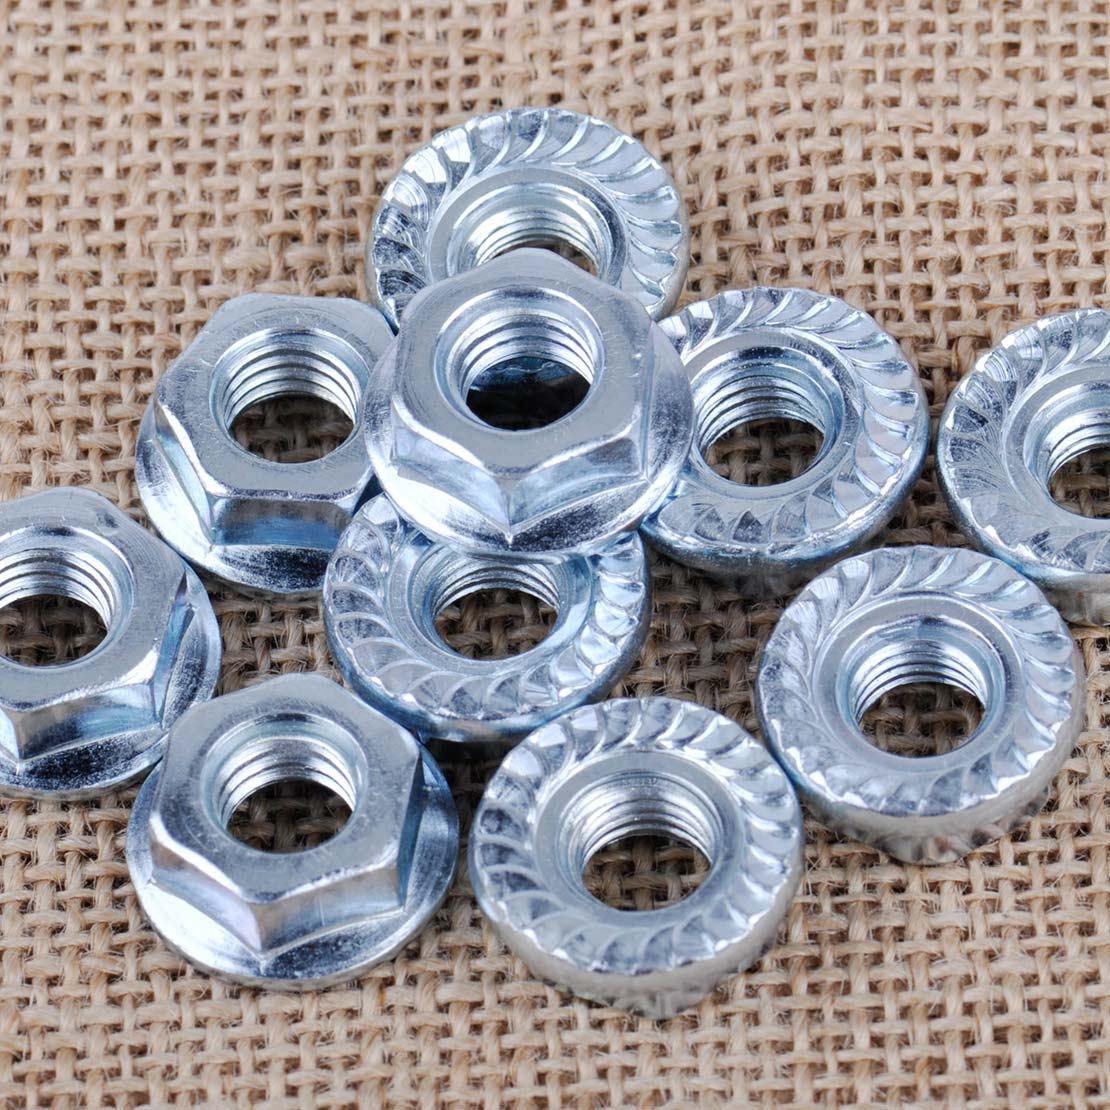 LETAOSK New 10 PCS Metal Bar Nuts 8mm Replacement Fit For Husqvarna & Jonsered Chainsaw